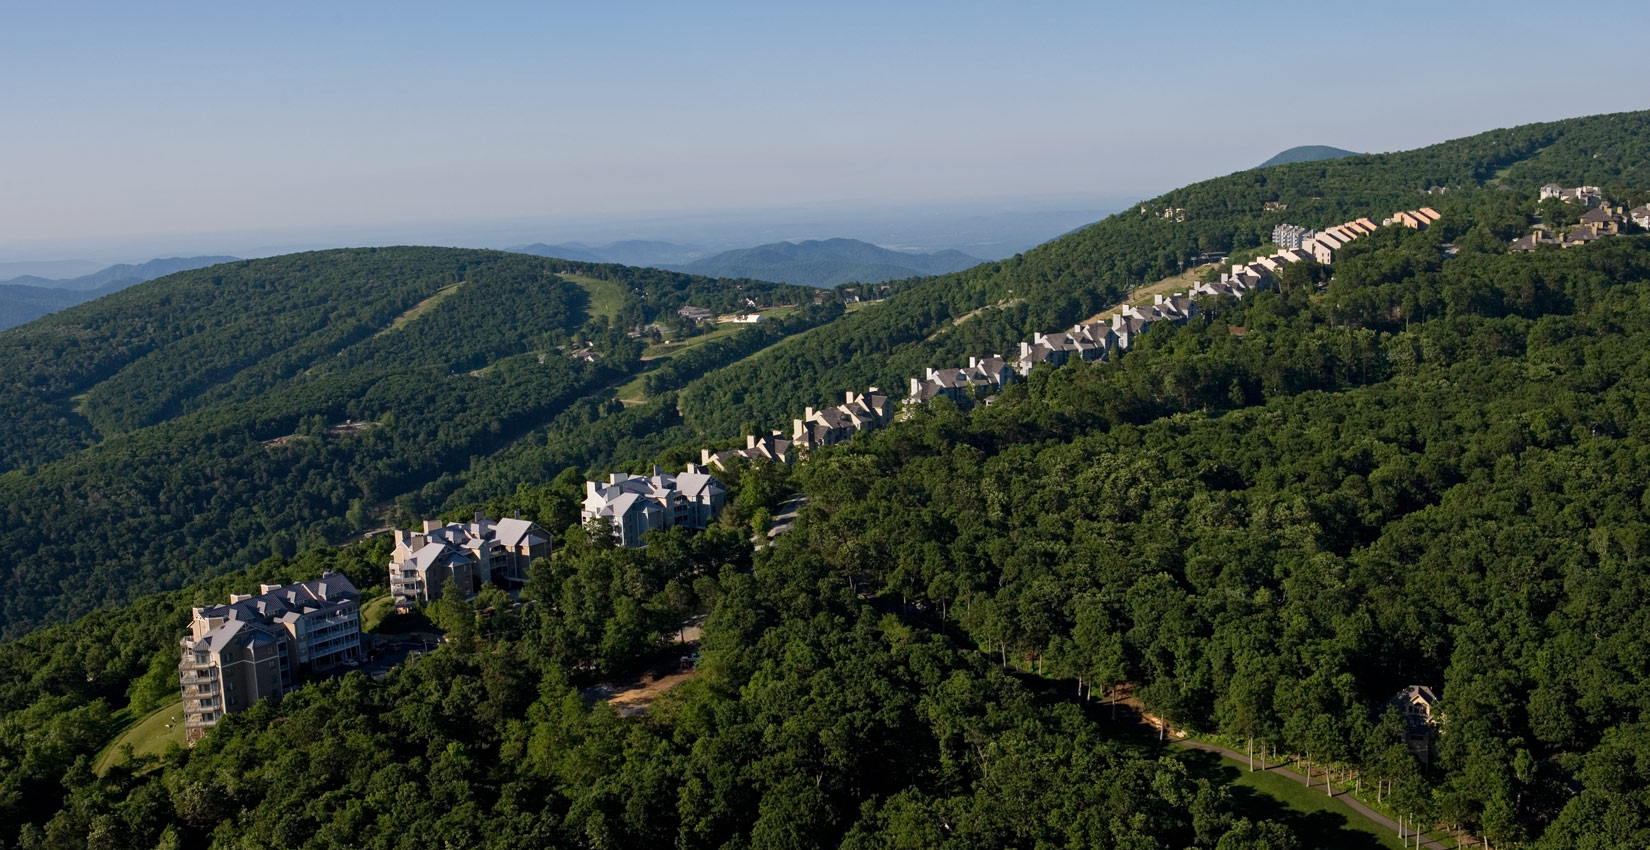 Family summer vacation Condo accommodations in the blue ridge mountains at wintergreen resort